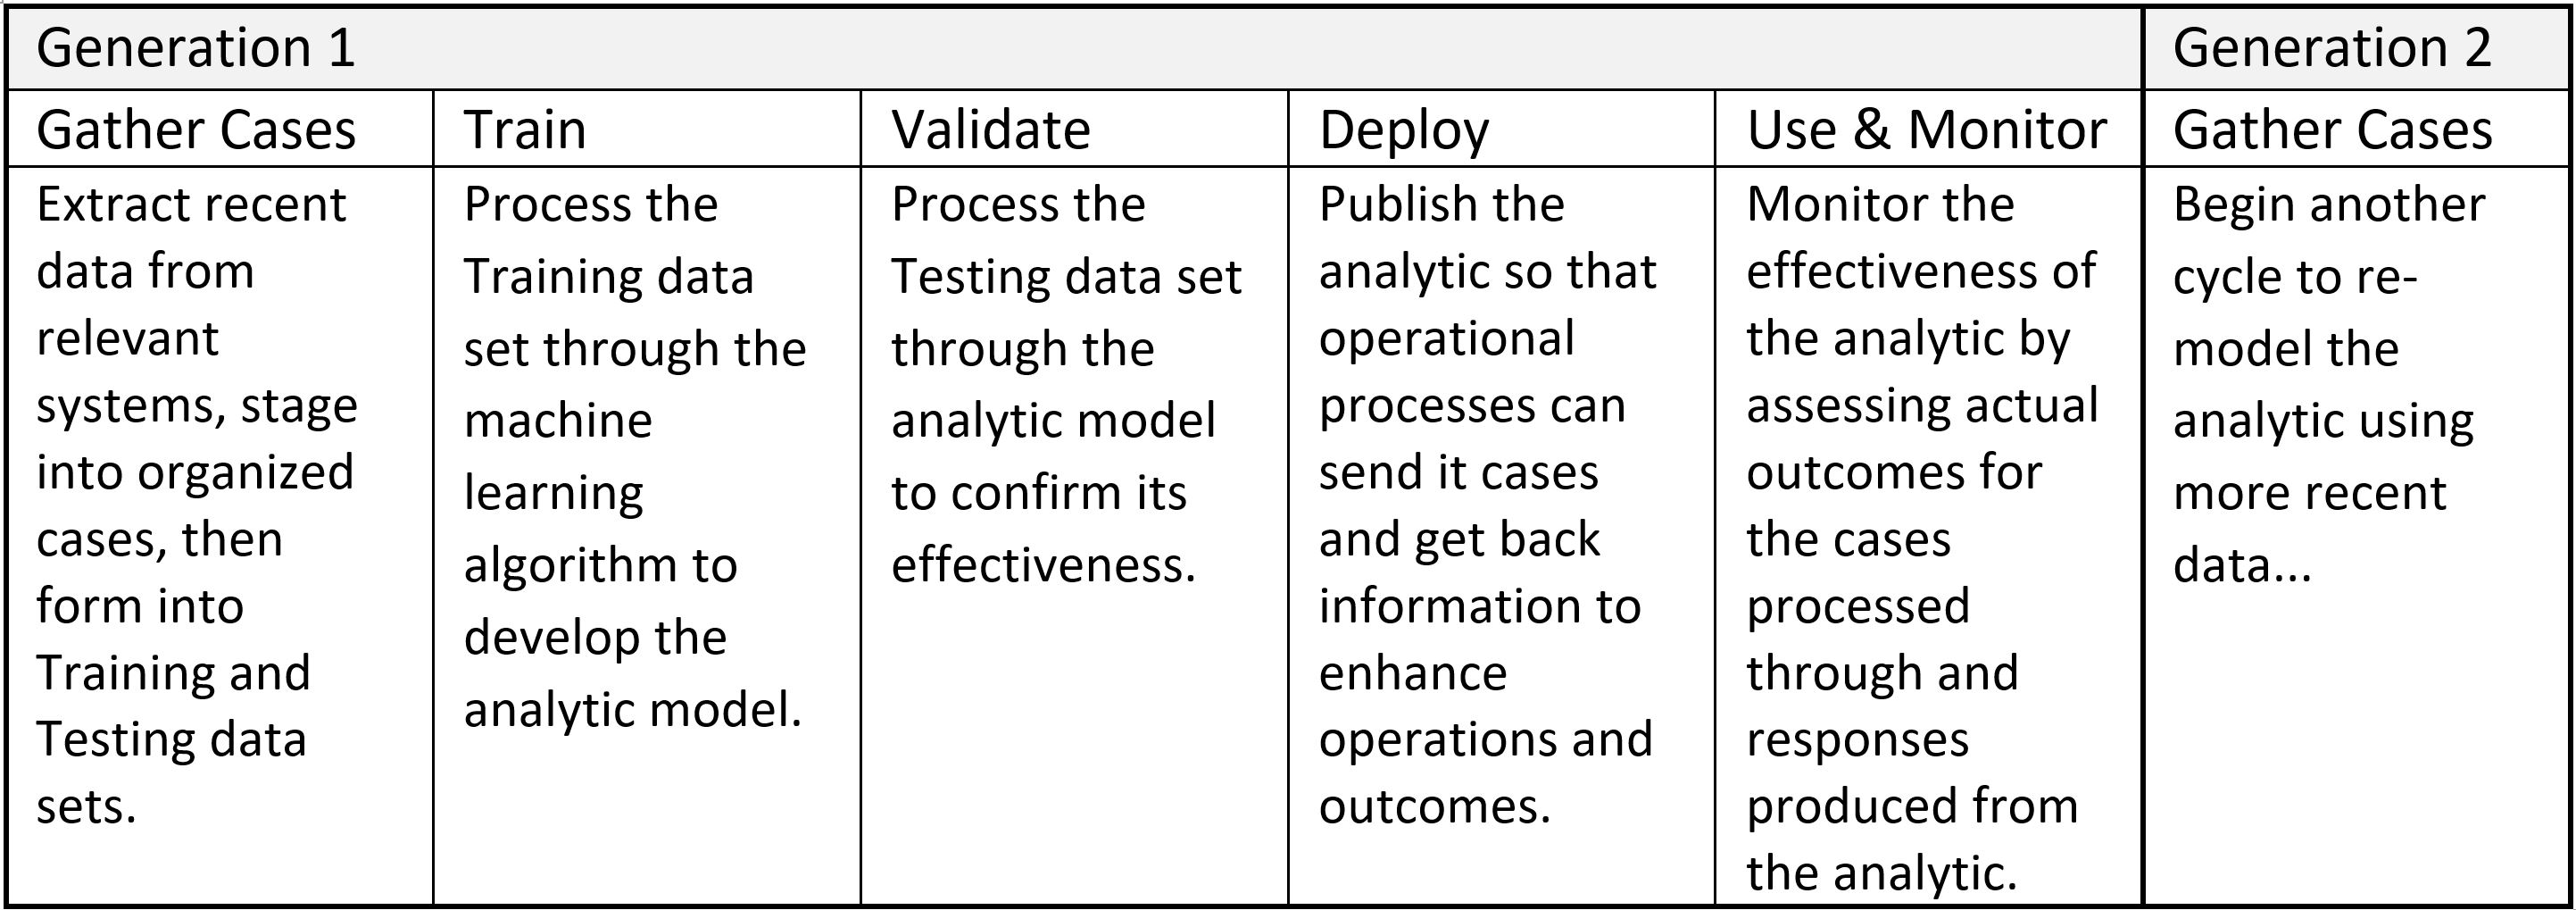 Use Continual Learning to Avoid Analytics Disruption from COVID-19 Image 2